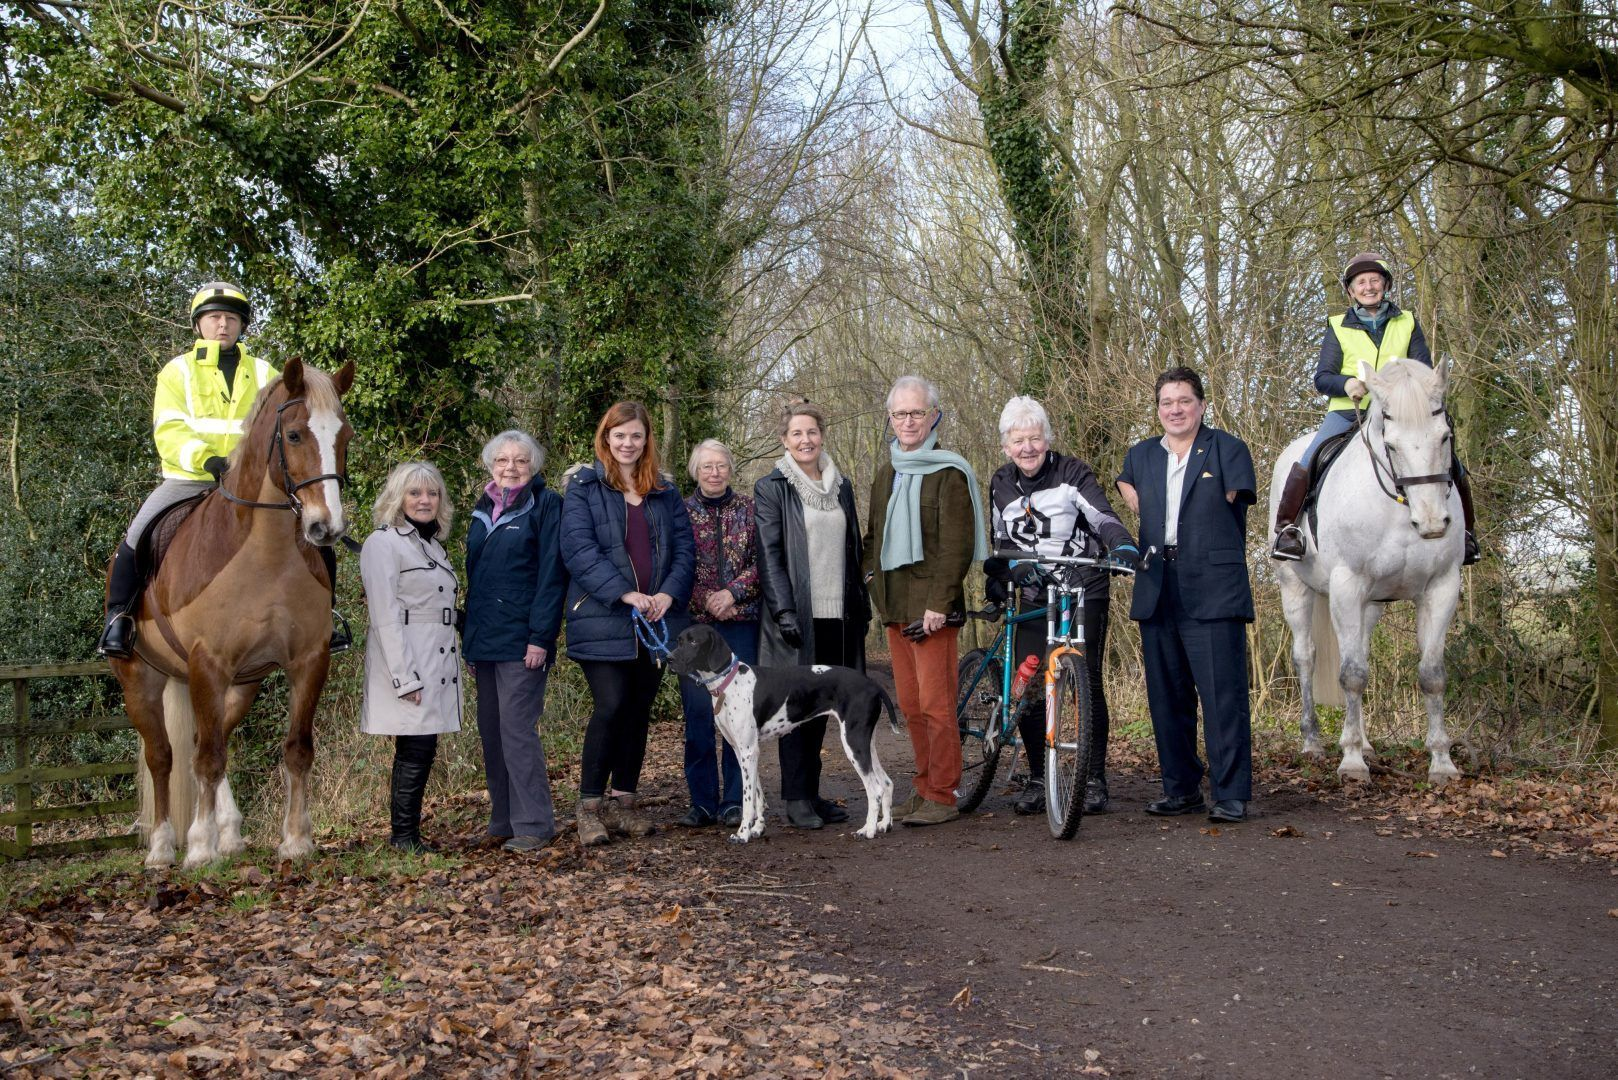 £70,000 has been granted to the North Dorset Trailway Trust